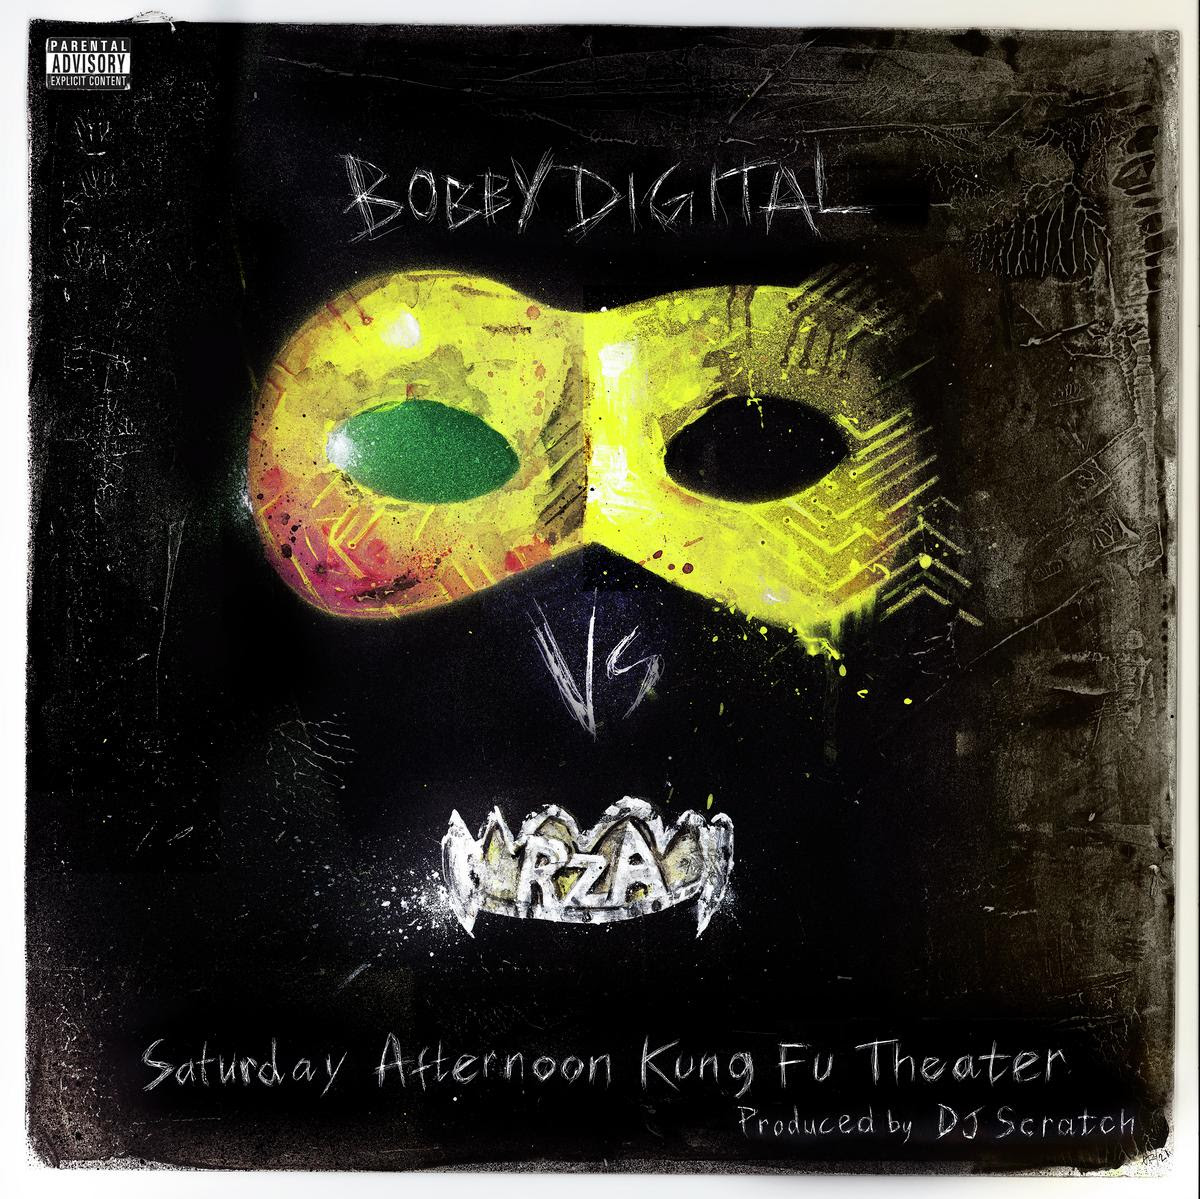 unnamed2 - RZA Releases New Single Saturday Afternoon Kung Fu Theater produced by DJ Scratch